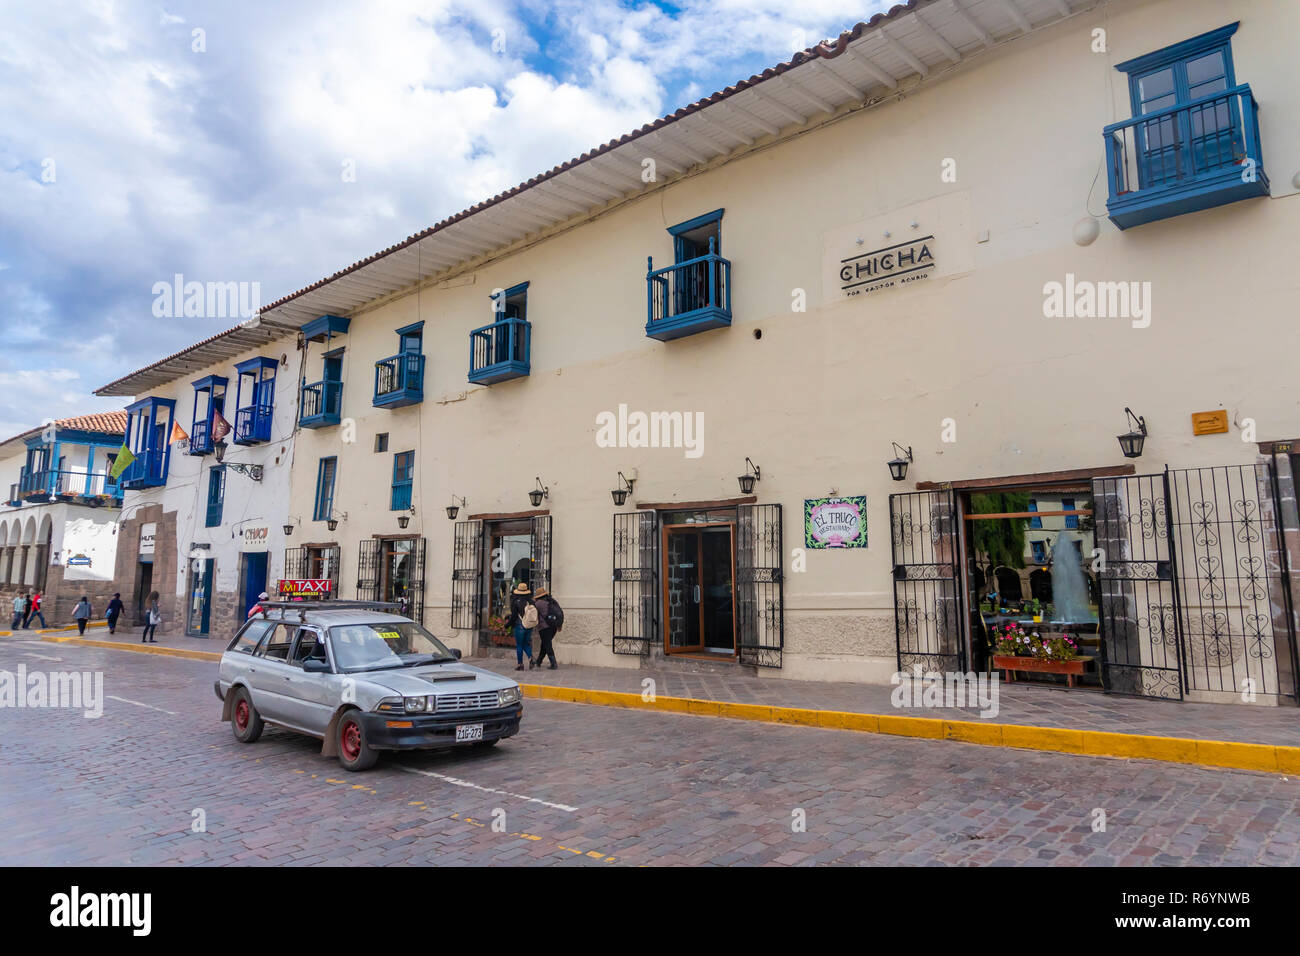 Taxi on a road in Cusco, Peru - Stock Image